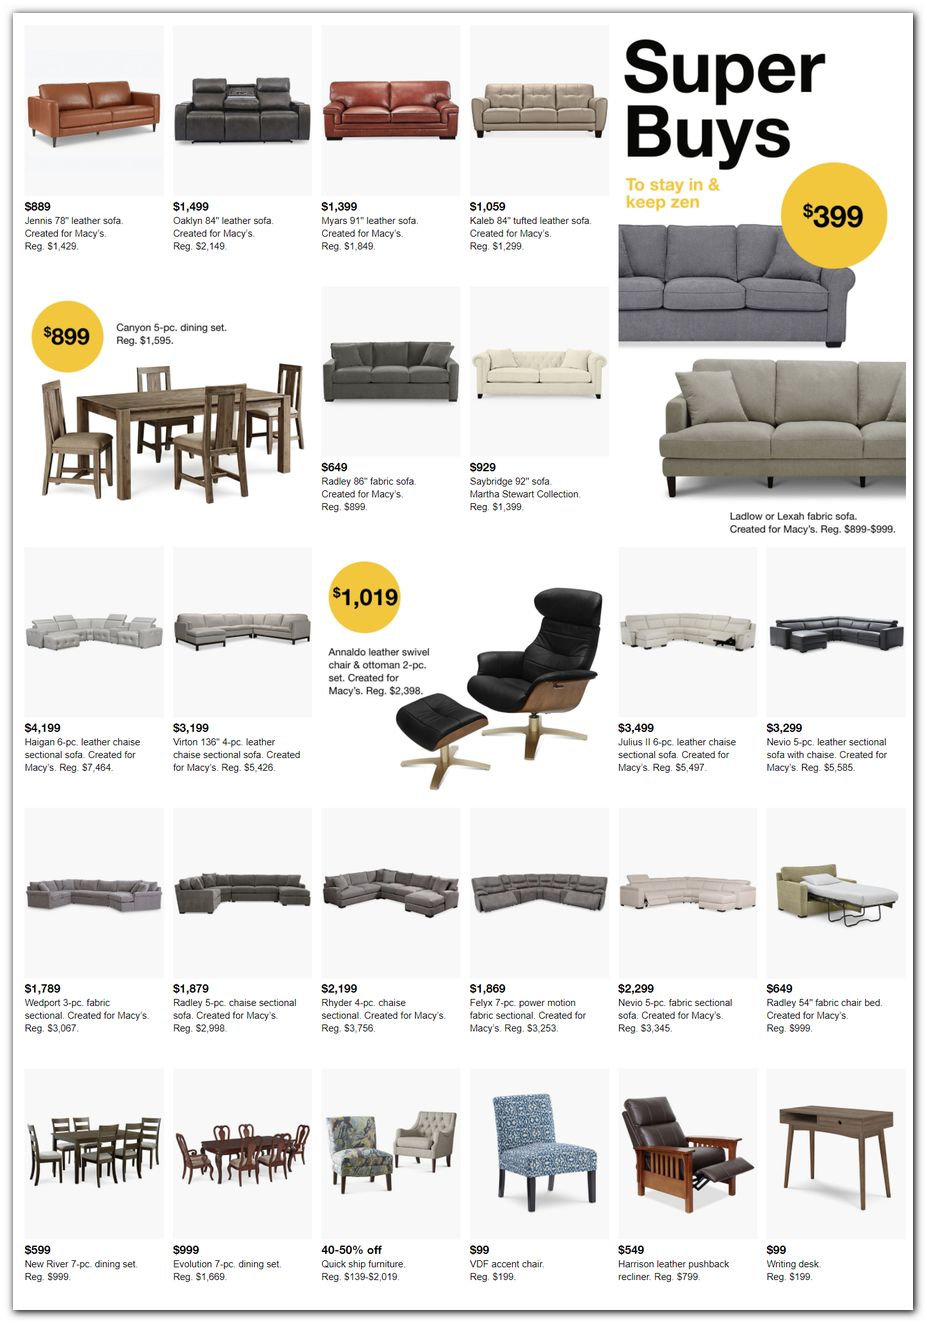 Sofa / Sectionals / Dining Sets